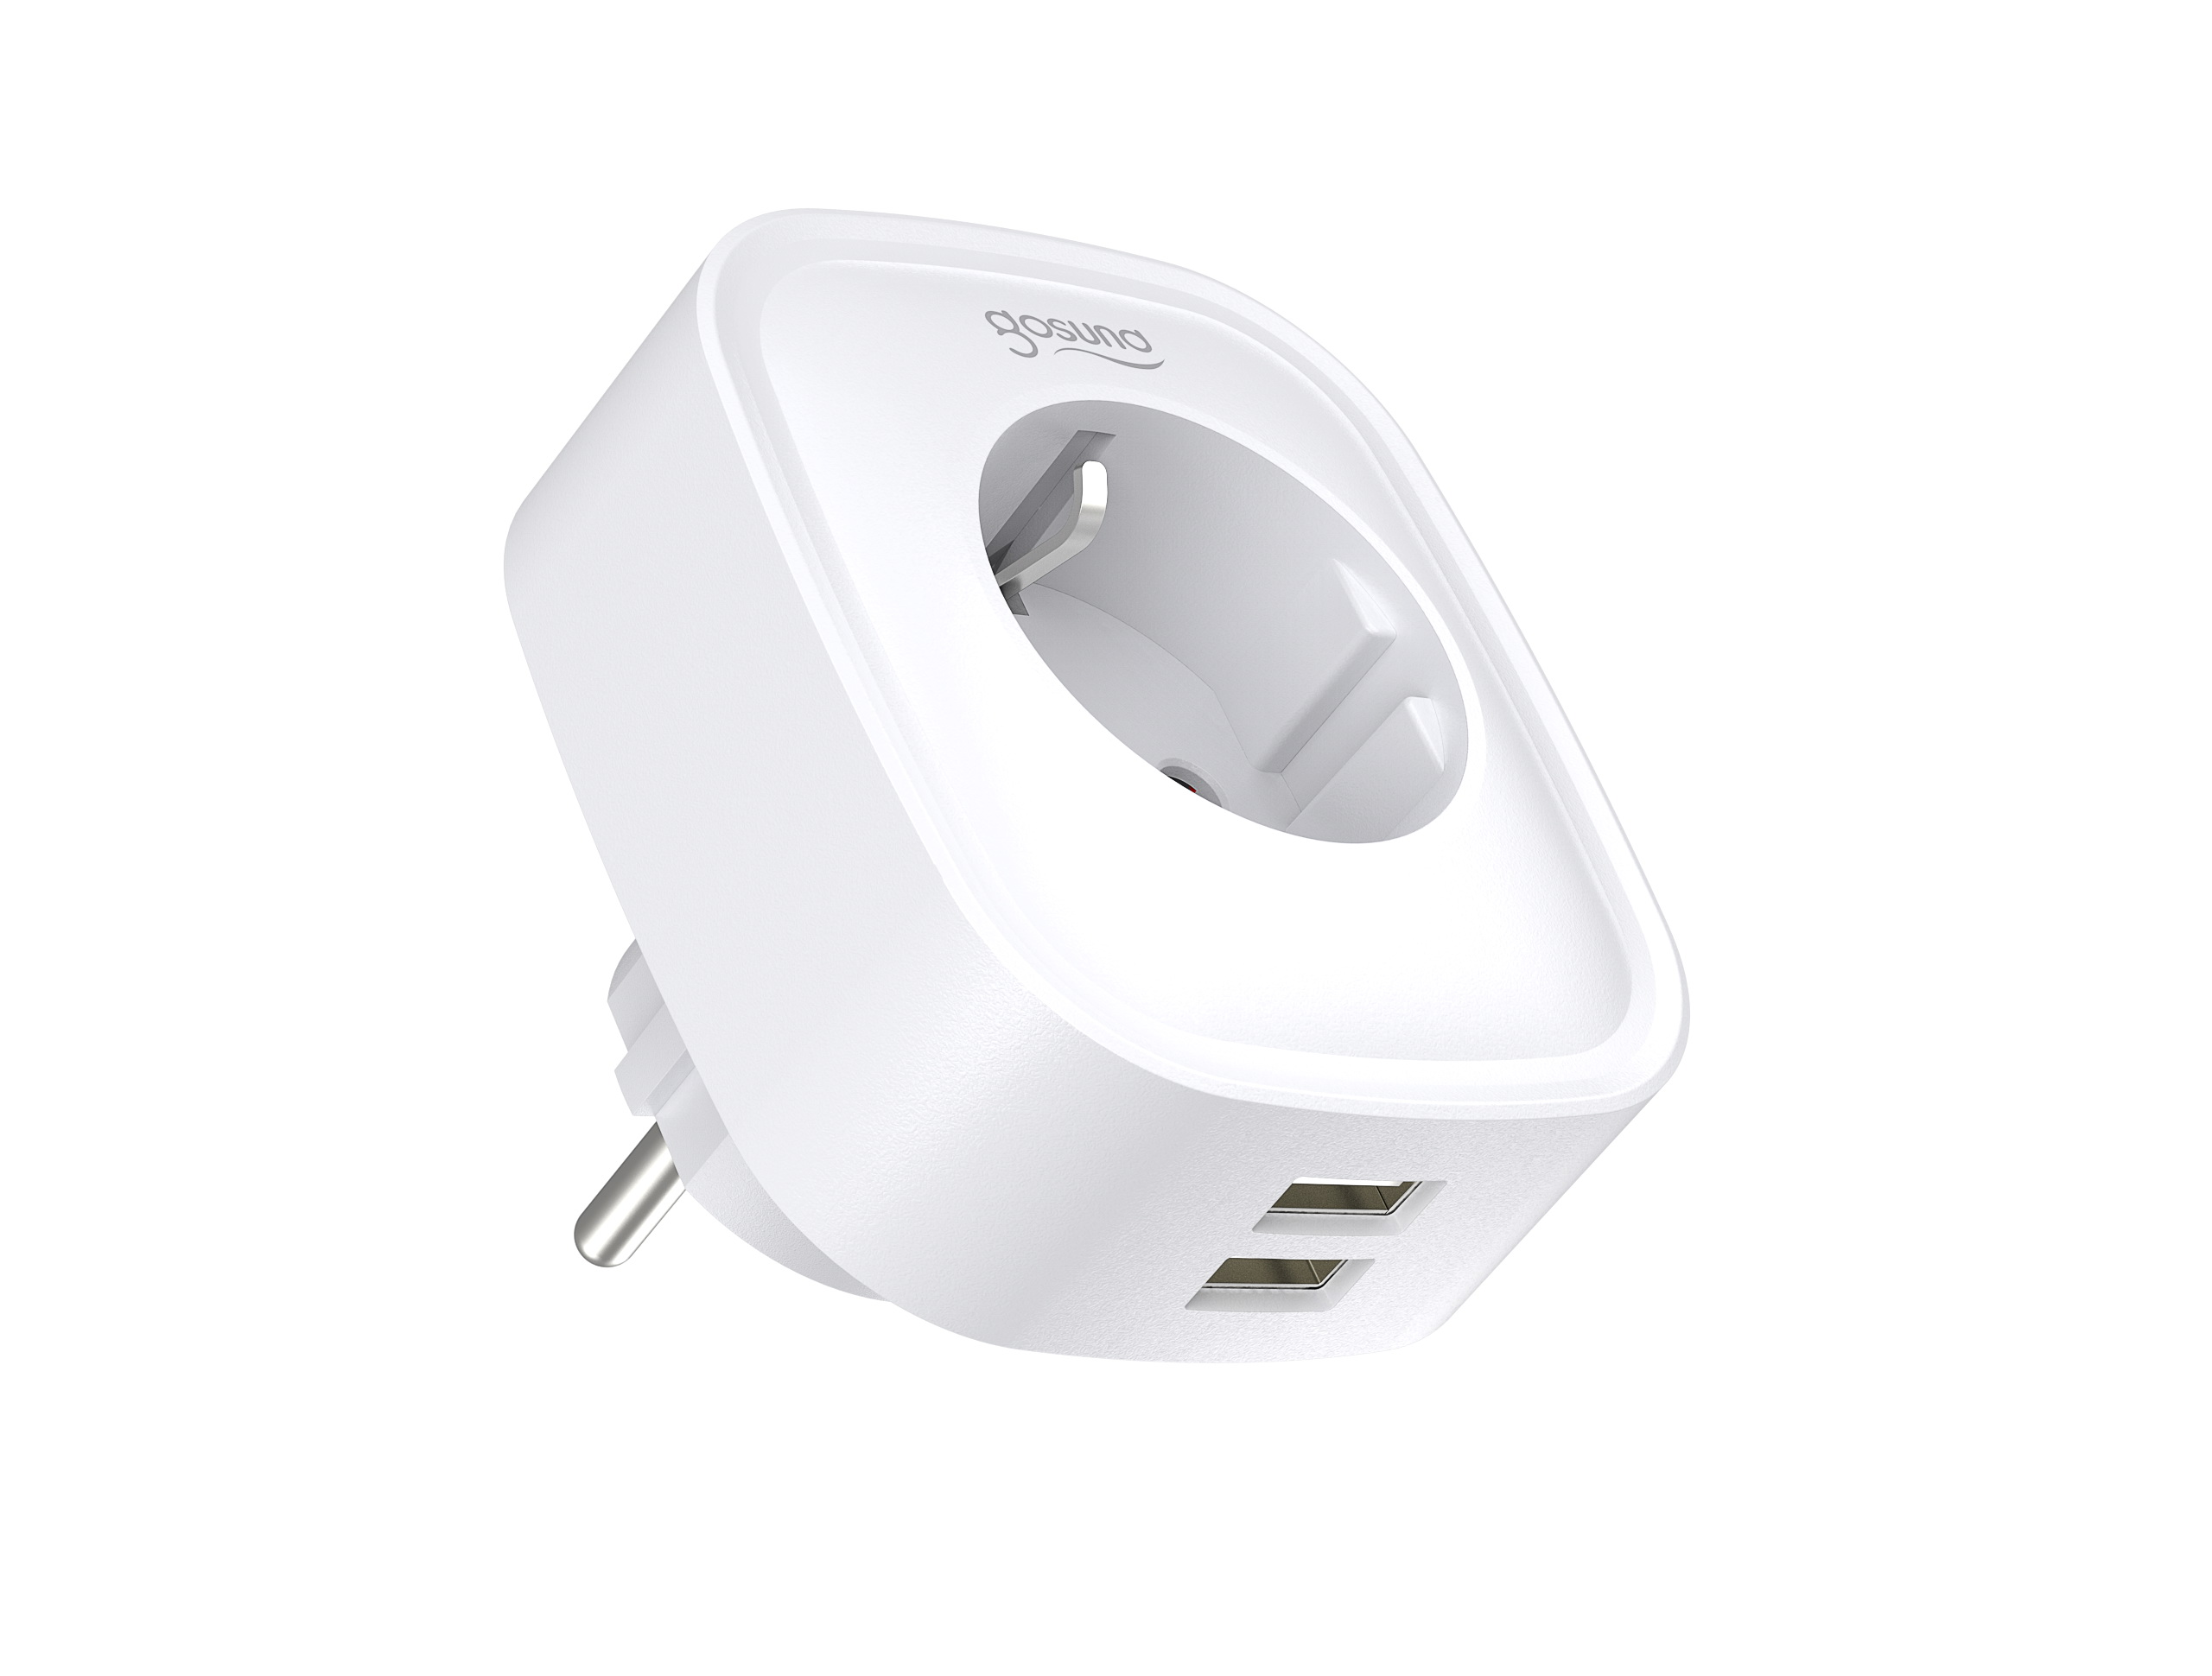 Gosund SP112 smart stopcontact enkel + 2 x USB, met schakelaar, Allexa, Google Home and IFTTT compatible